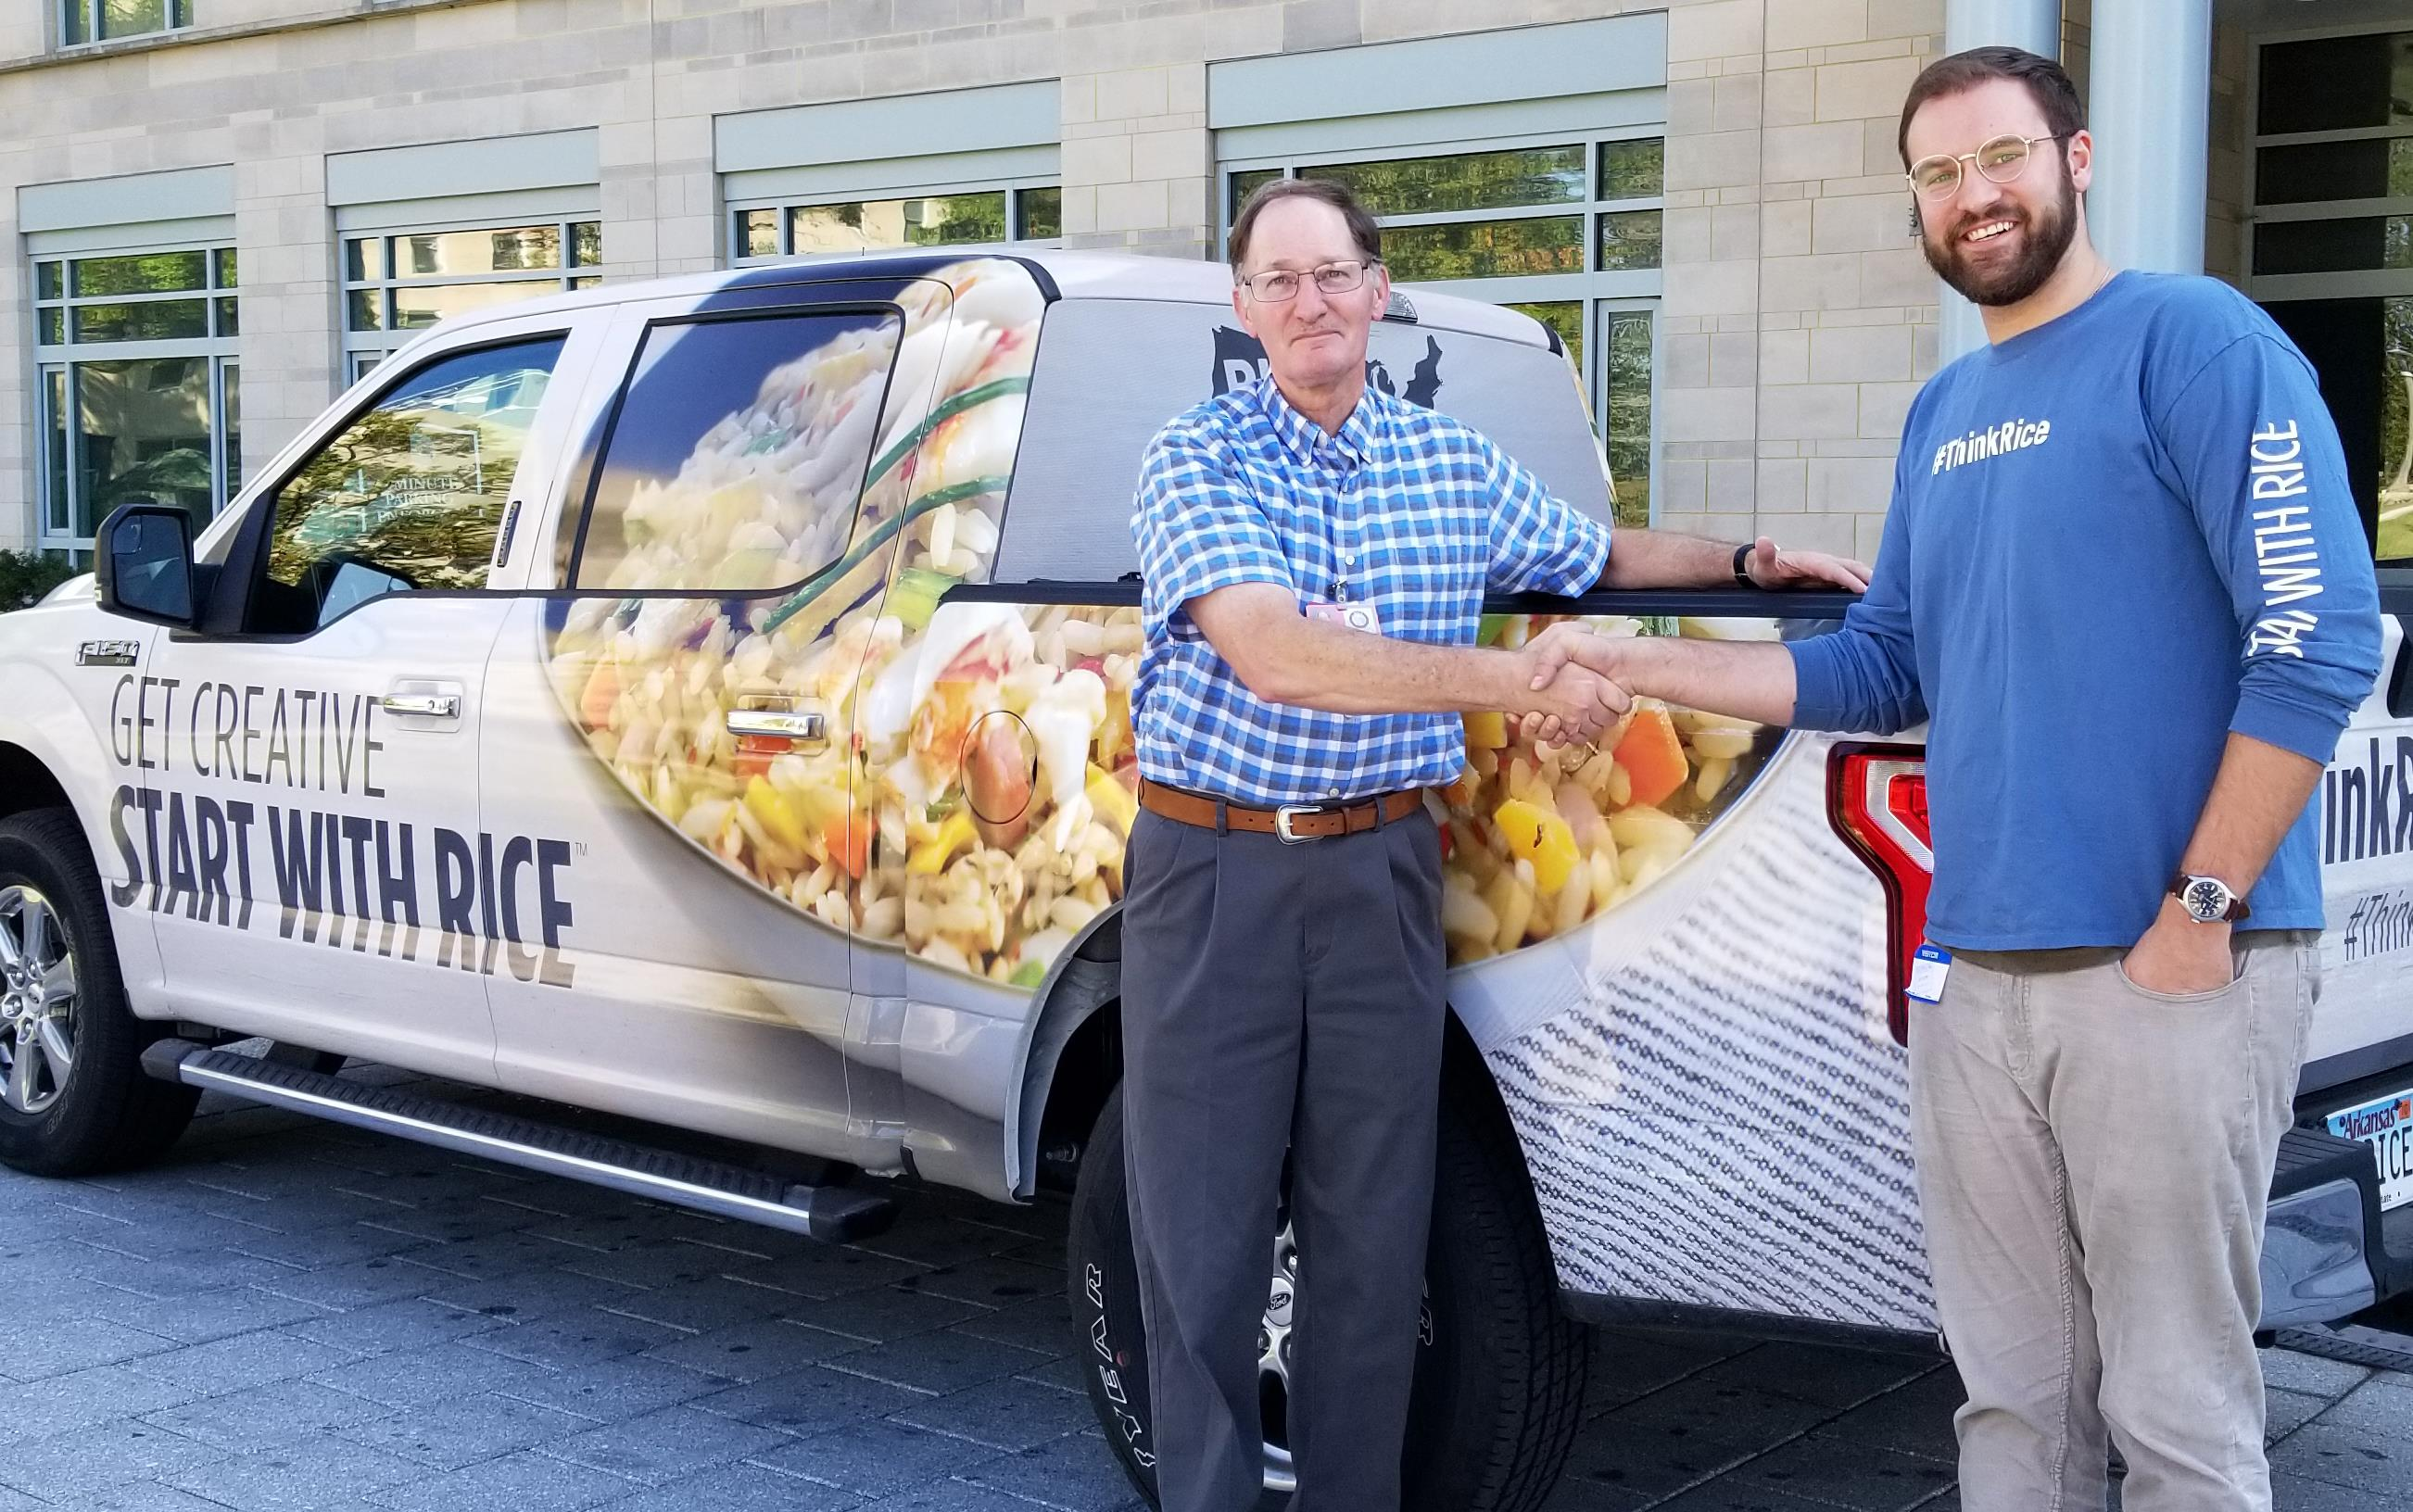 Two men shake hands while standing in front of pickup truck with rice messaging